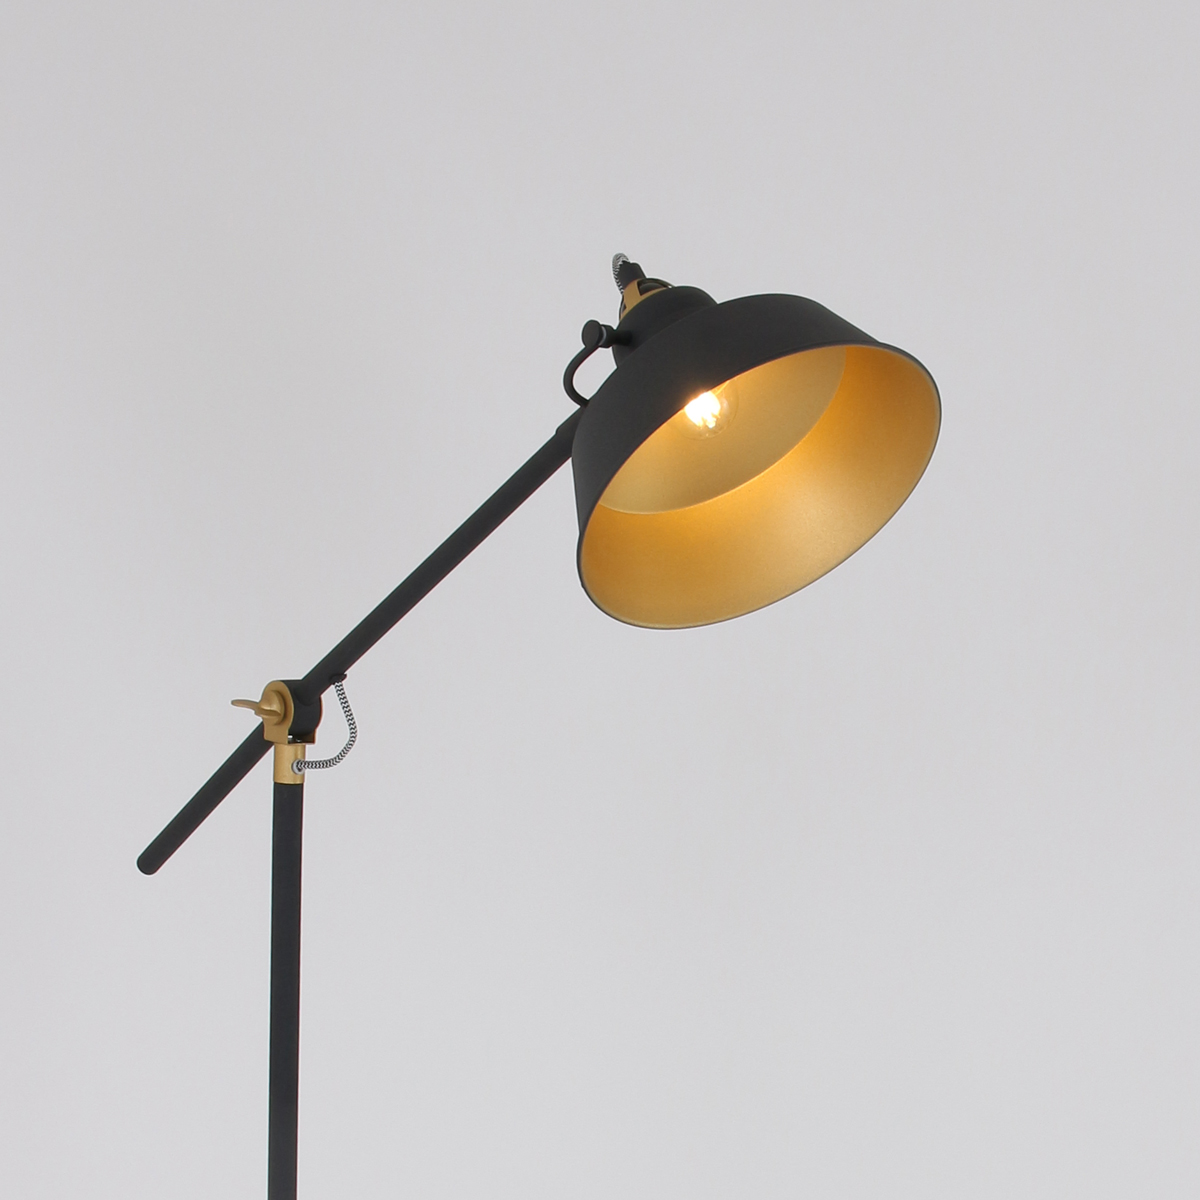 Industrielle Stehlampe Caseconrad Com